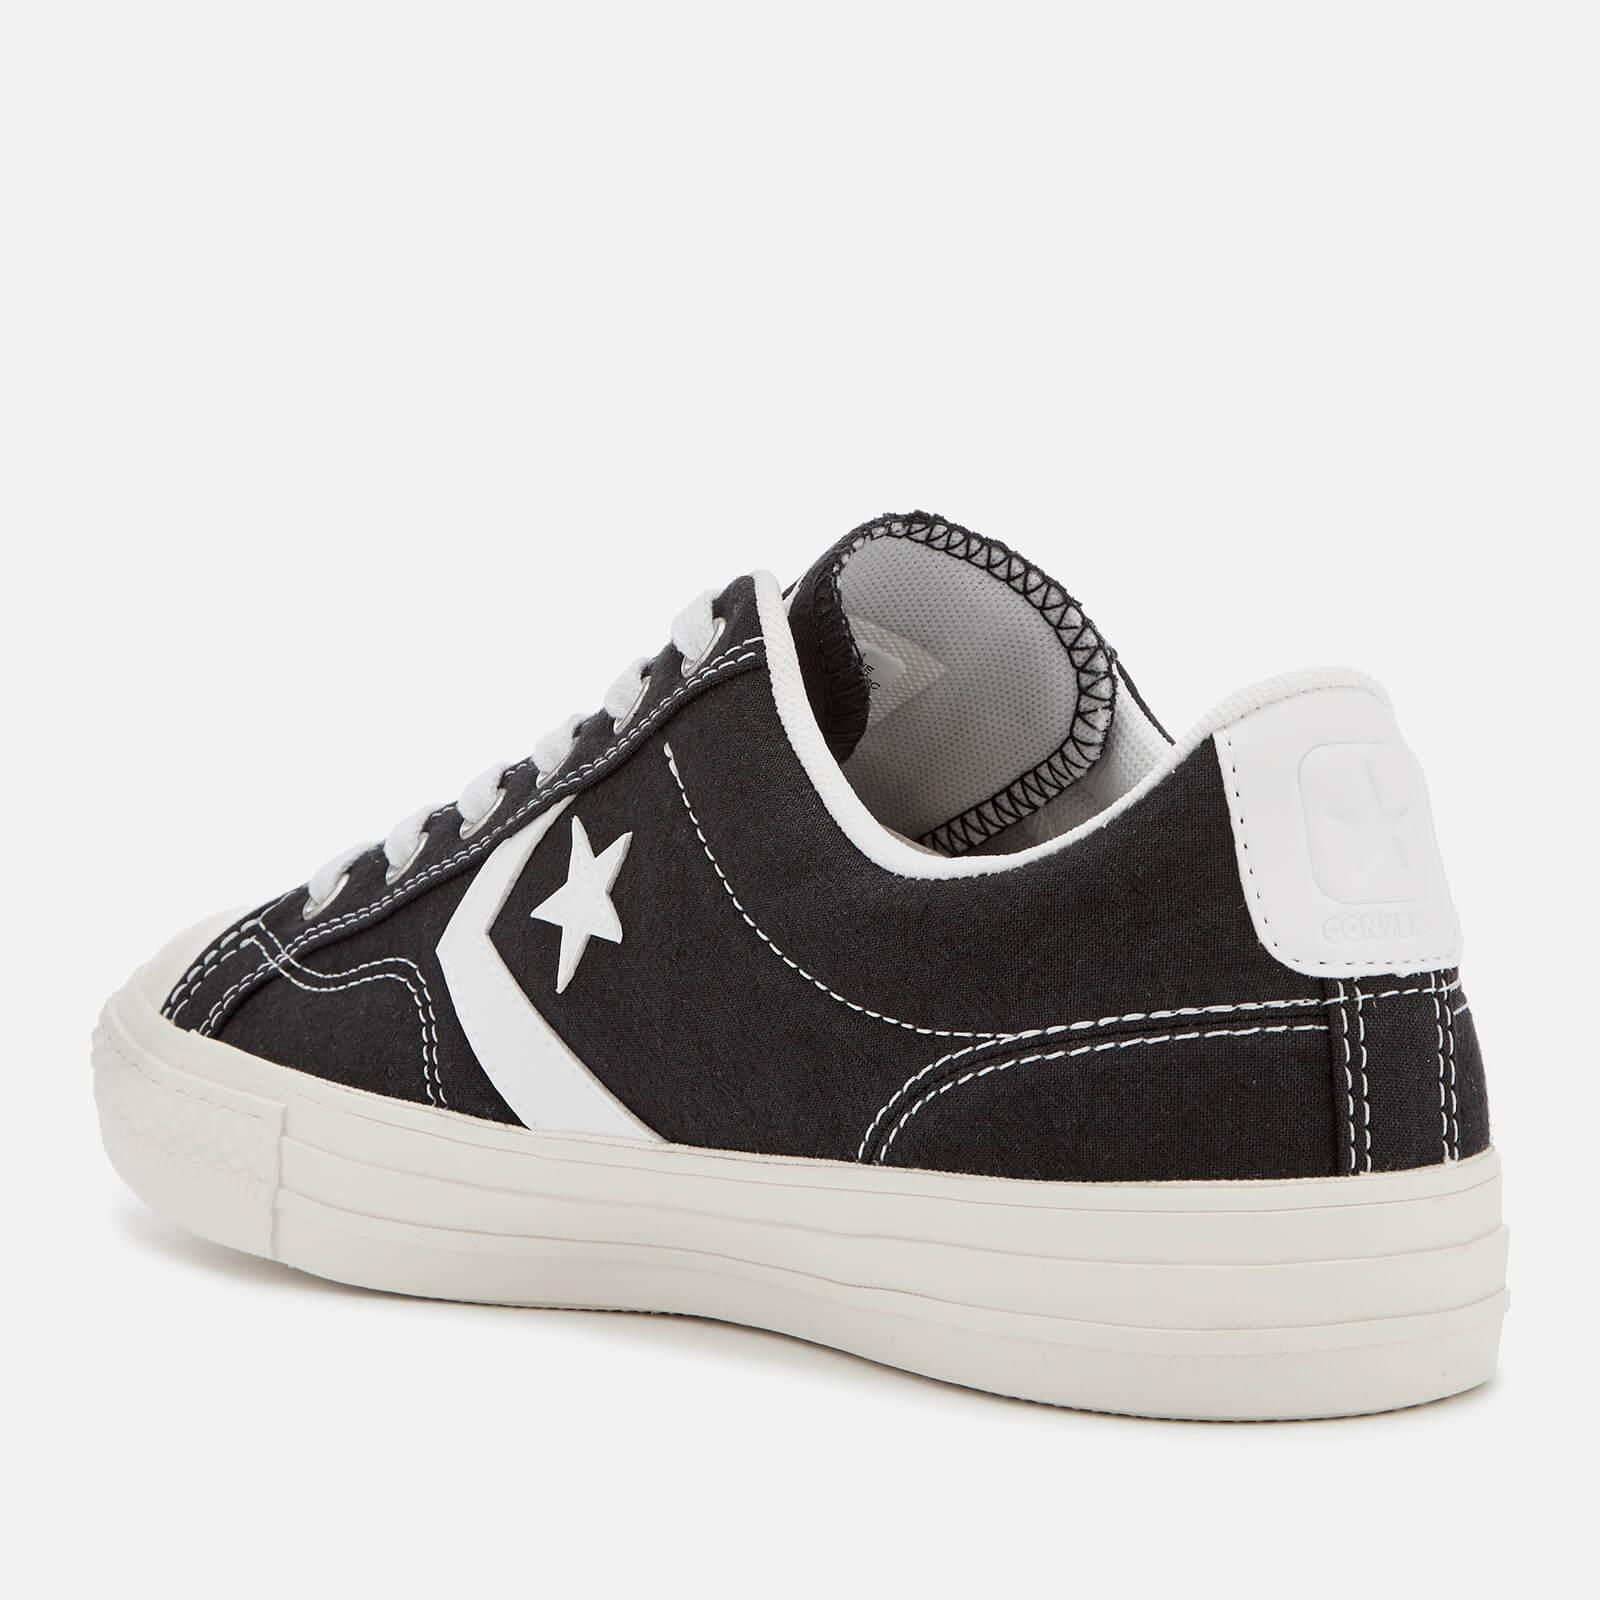 a6ff389e9159 Converse - Black Star Player Ox Trainers for Men - Lyst. View fullscreen